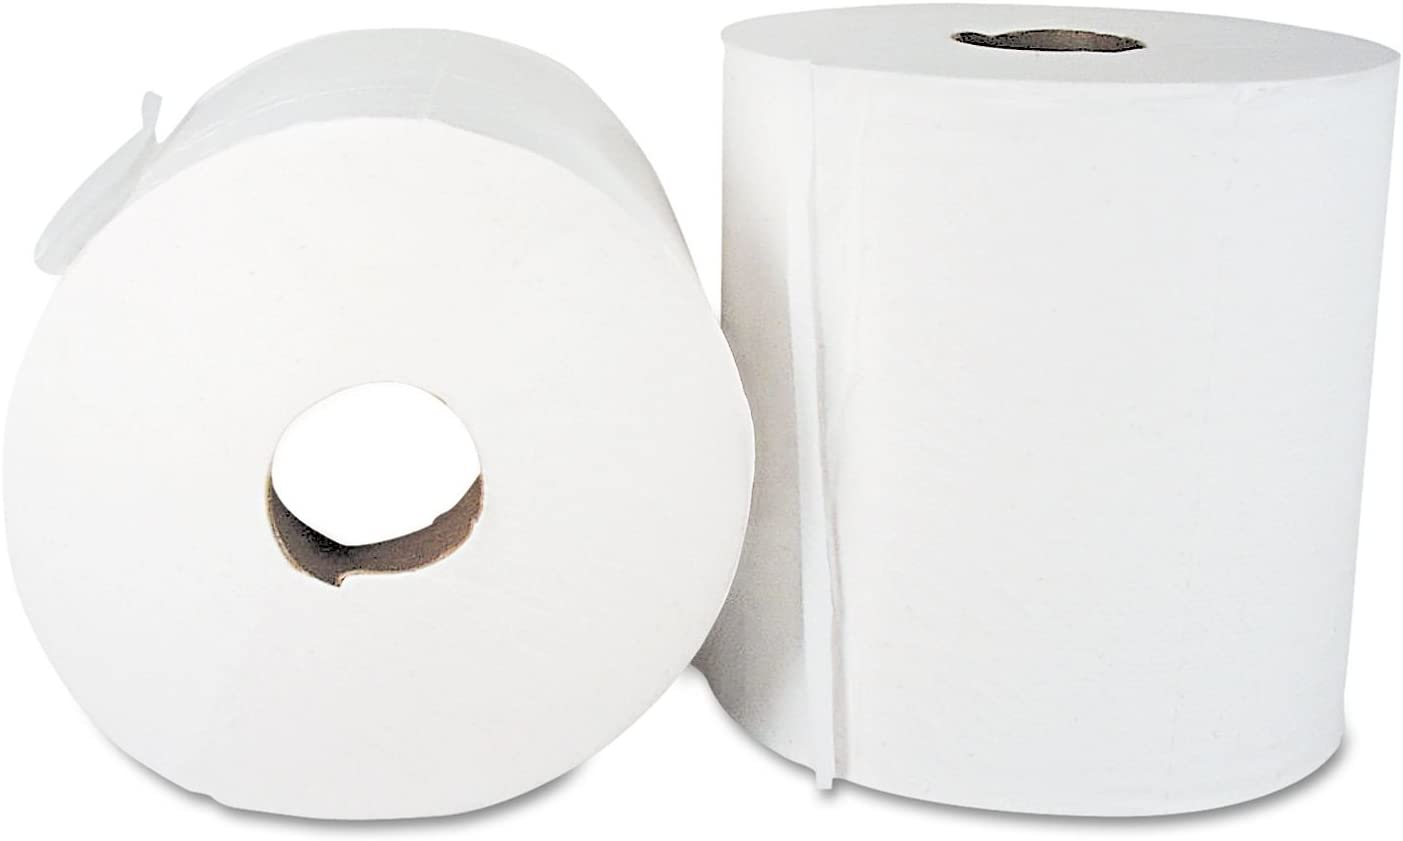 Boardwalk Center-Pull Surprise price Hand Towels 2-Ply Perforated x 8